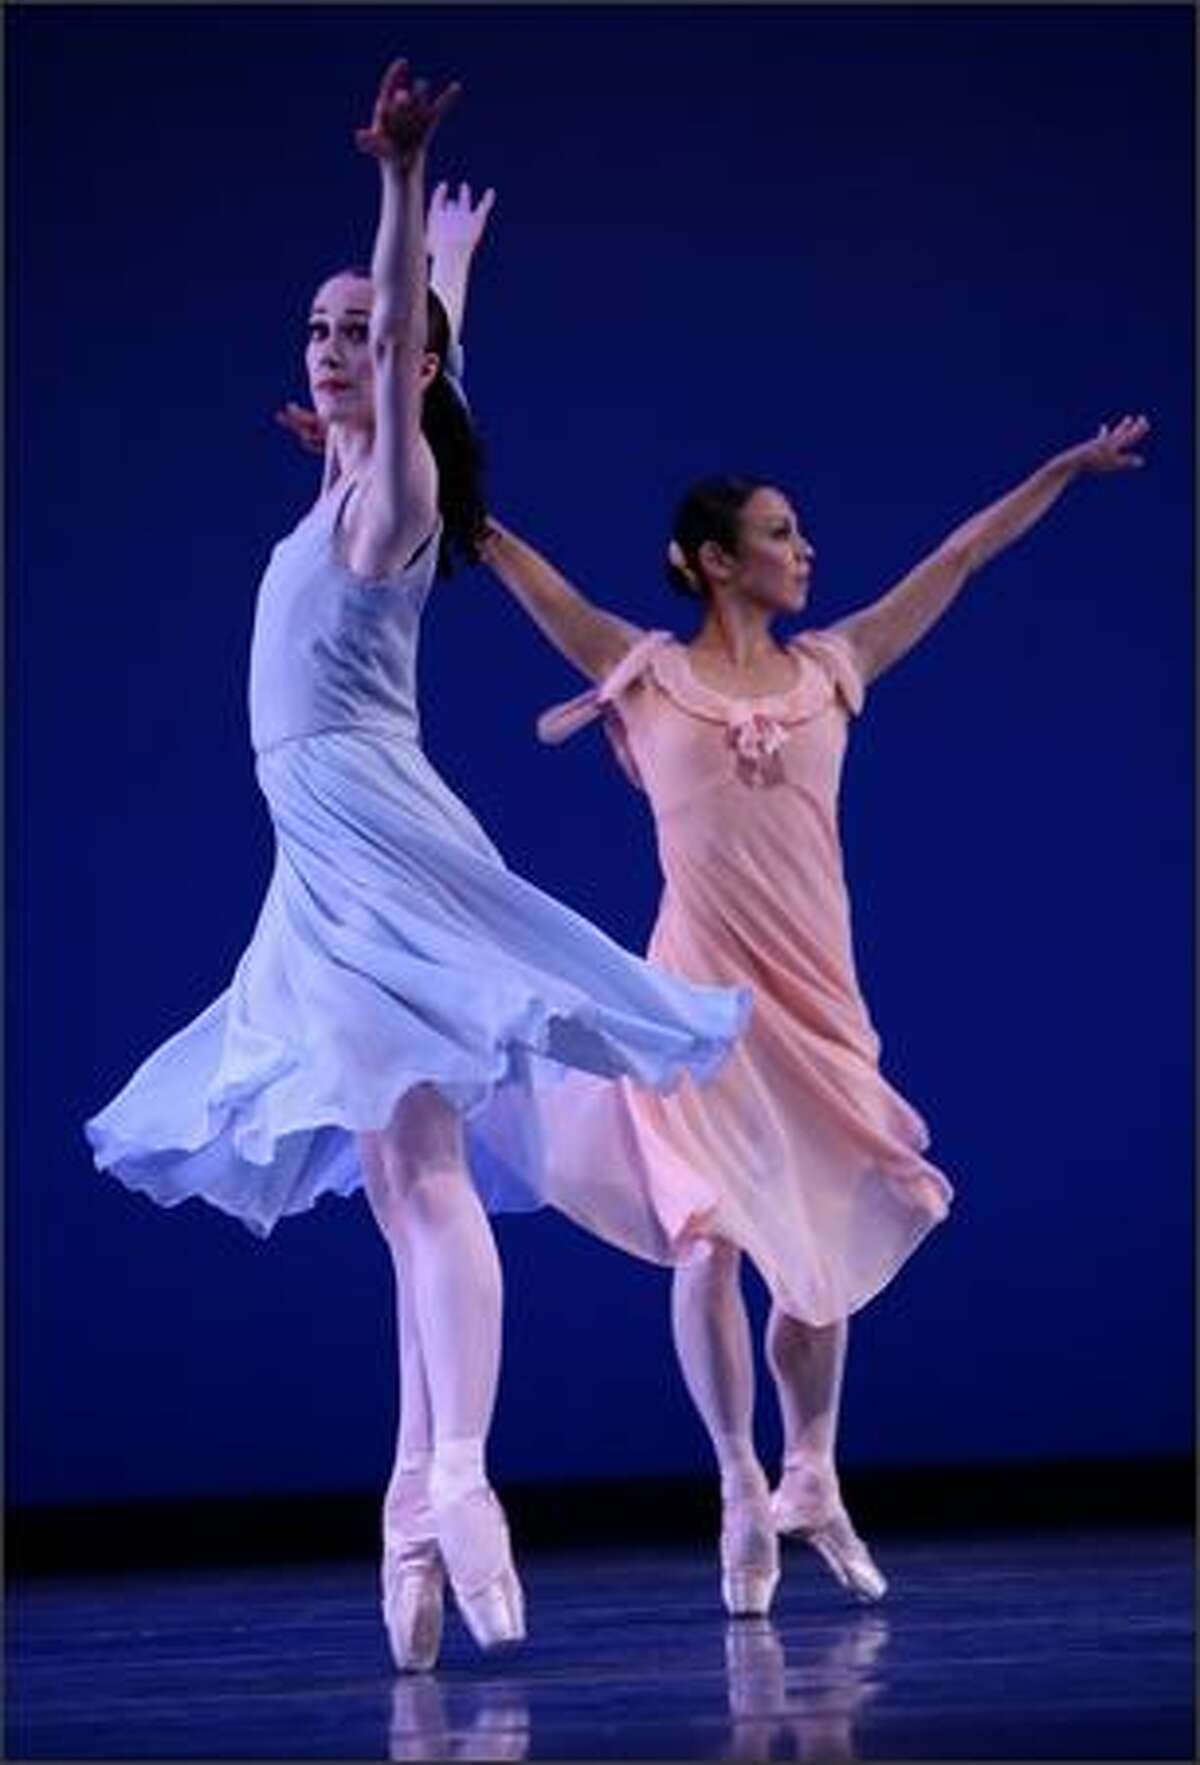 Corps de ballet dancer Sarah Ricard Orza, left, and principal dancer Kaori Nakamura of Pacific Northwest Ballet perform Jerome Robbins'